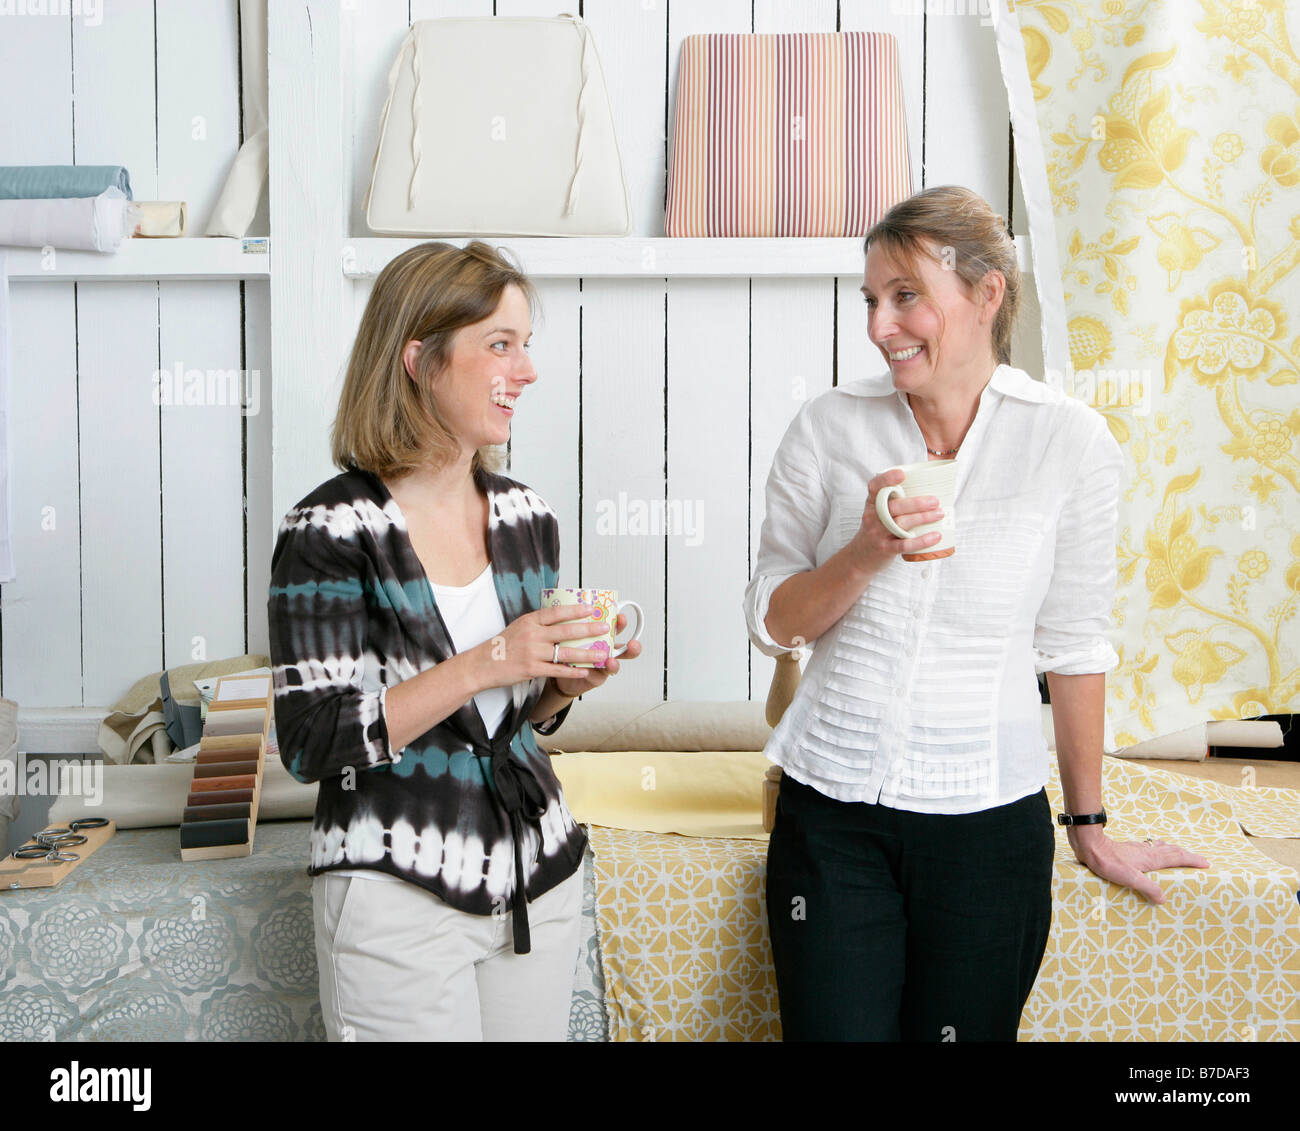 2 women discussing project - Stock Image